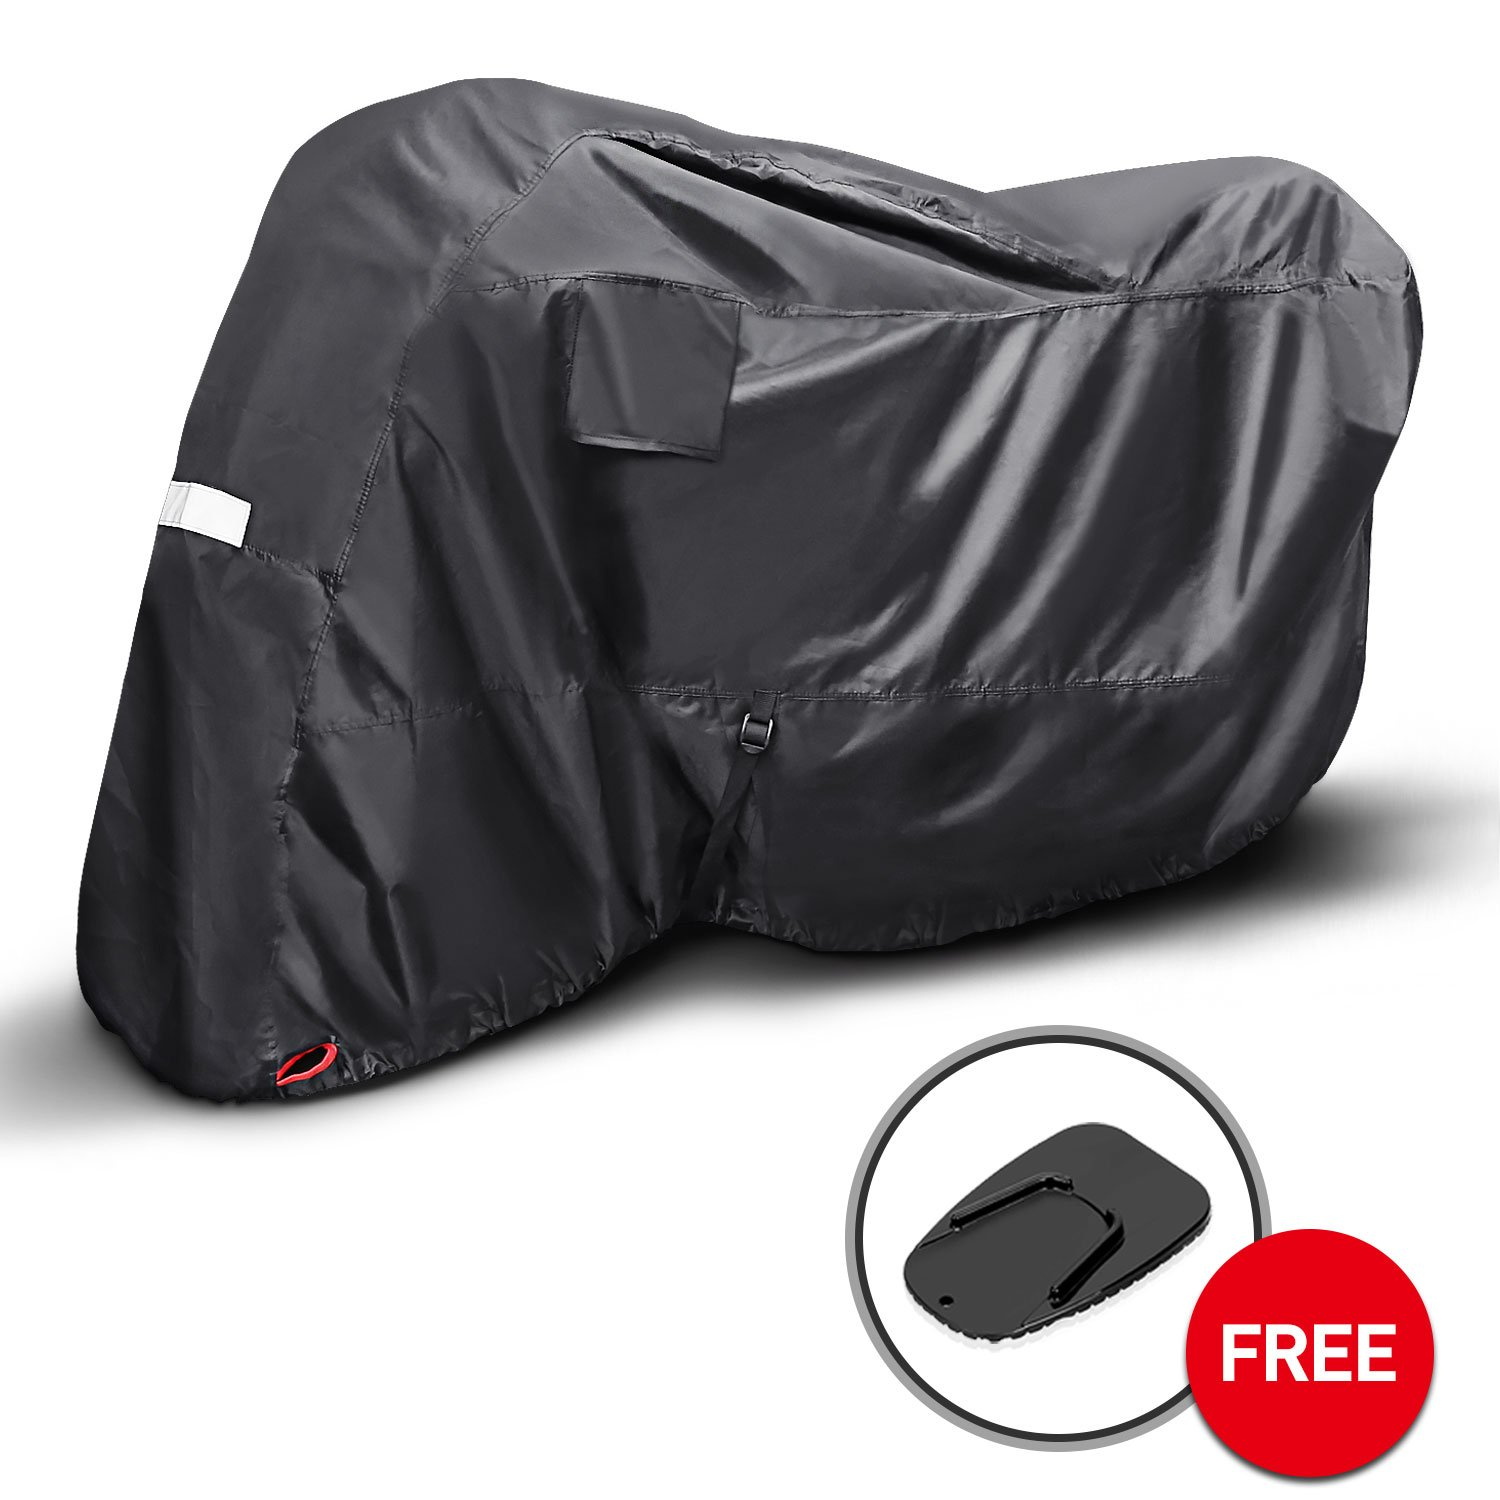 KAKIT Motorcycle Cover, Waterproof All Weather Outdoor Protection Motorcycle Covers, 210D Oxford Durable and Tear Proof, Fits up to 90.2'' Motors, for Harley, Honda, Yamaha, Suzuki and More